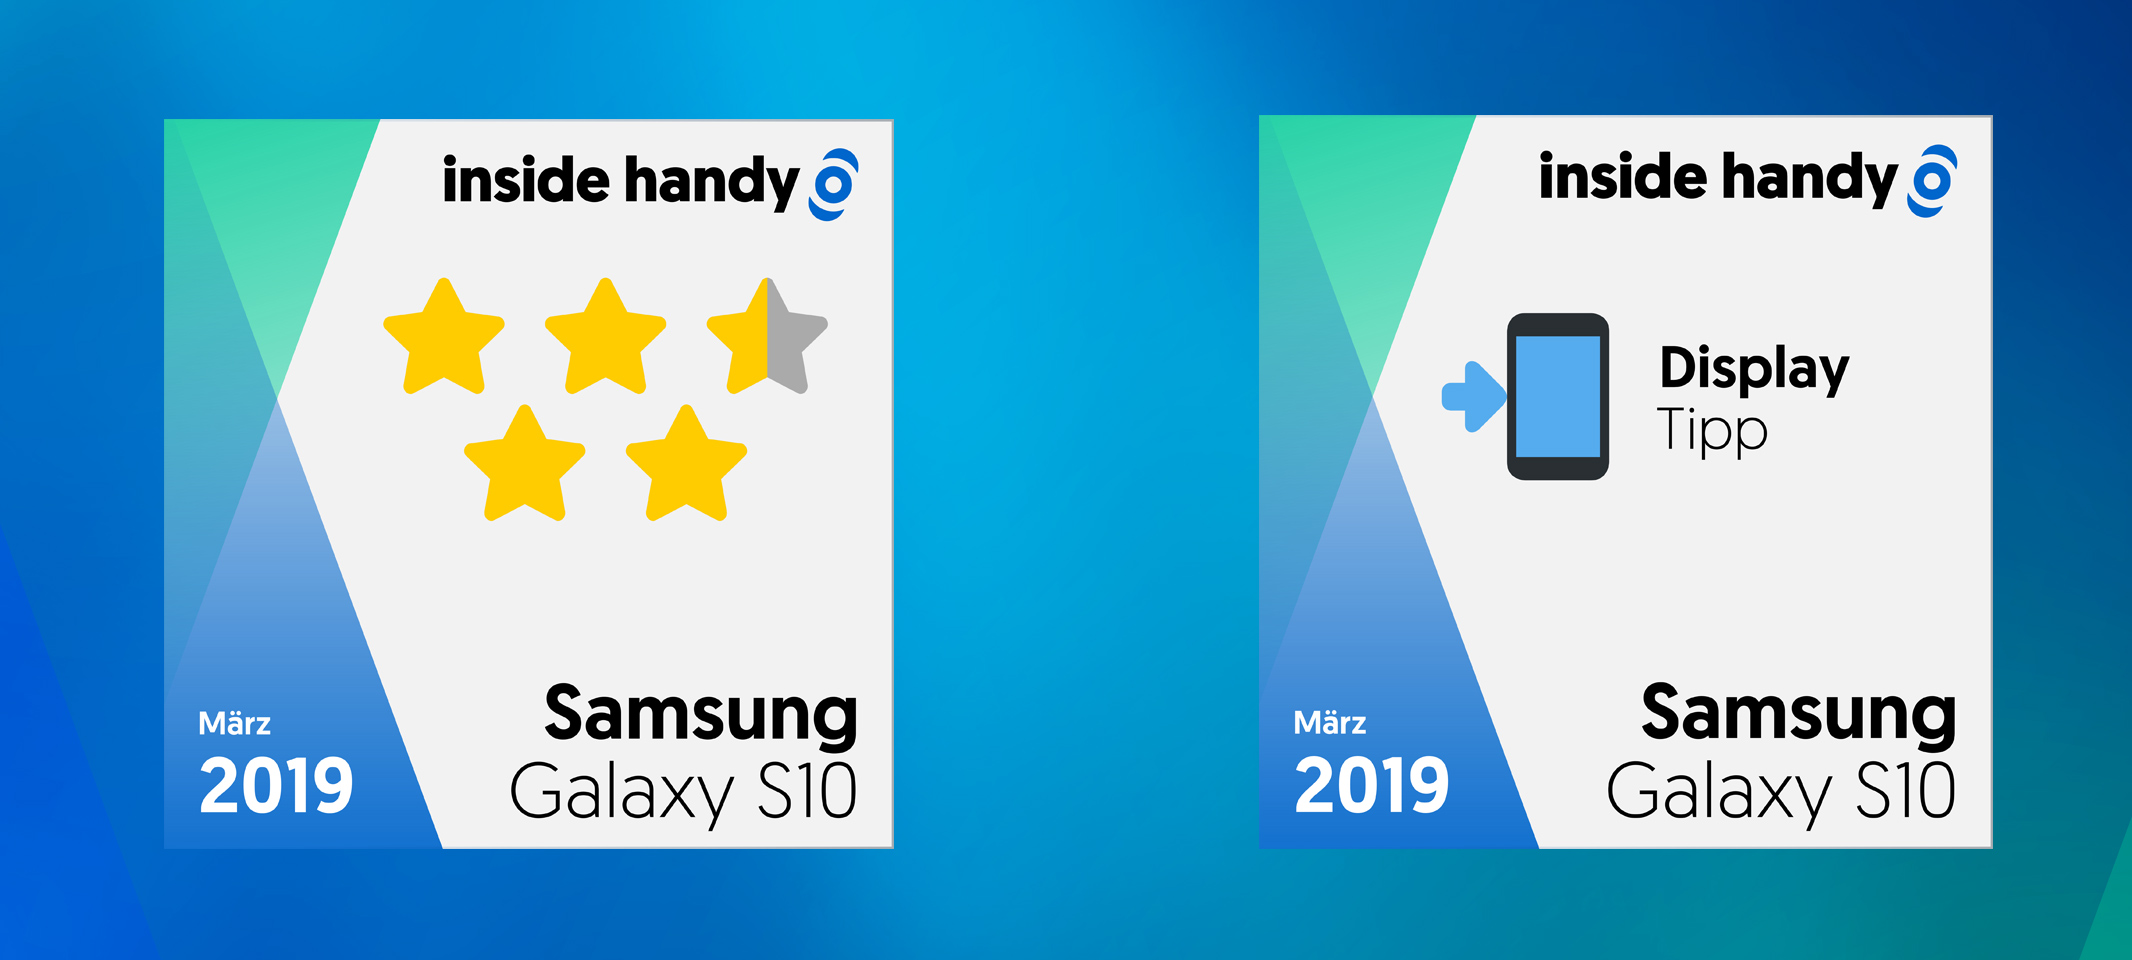 Samsung Galaxy S10 Test- und Display-Siegel